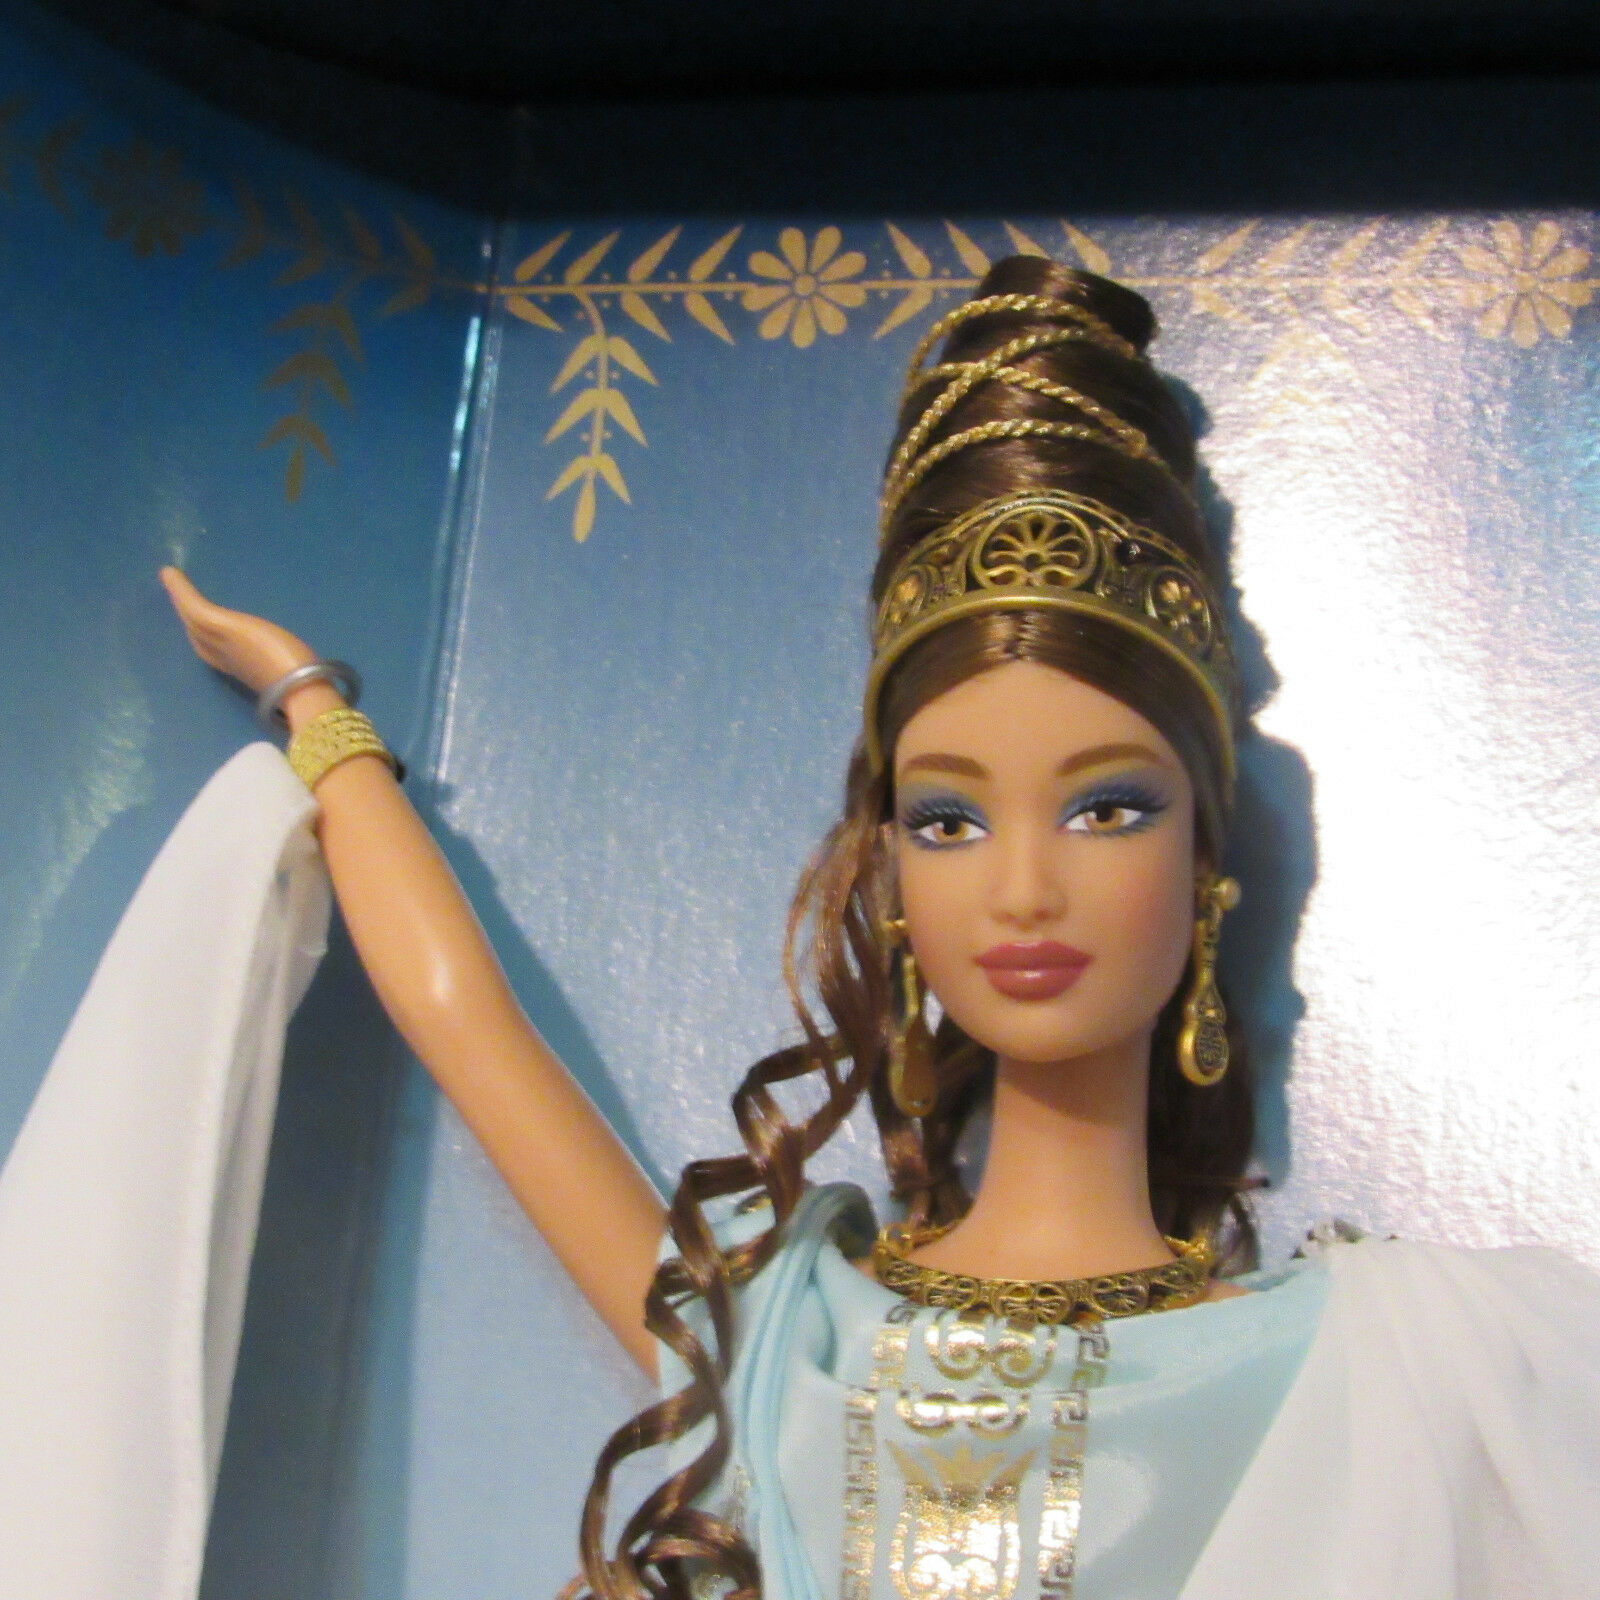 VHTF NRFB Goddess of Beauty Barbie Doll Classical Greek LTD ED 2000 image 3